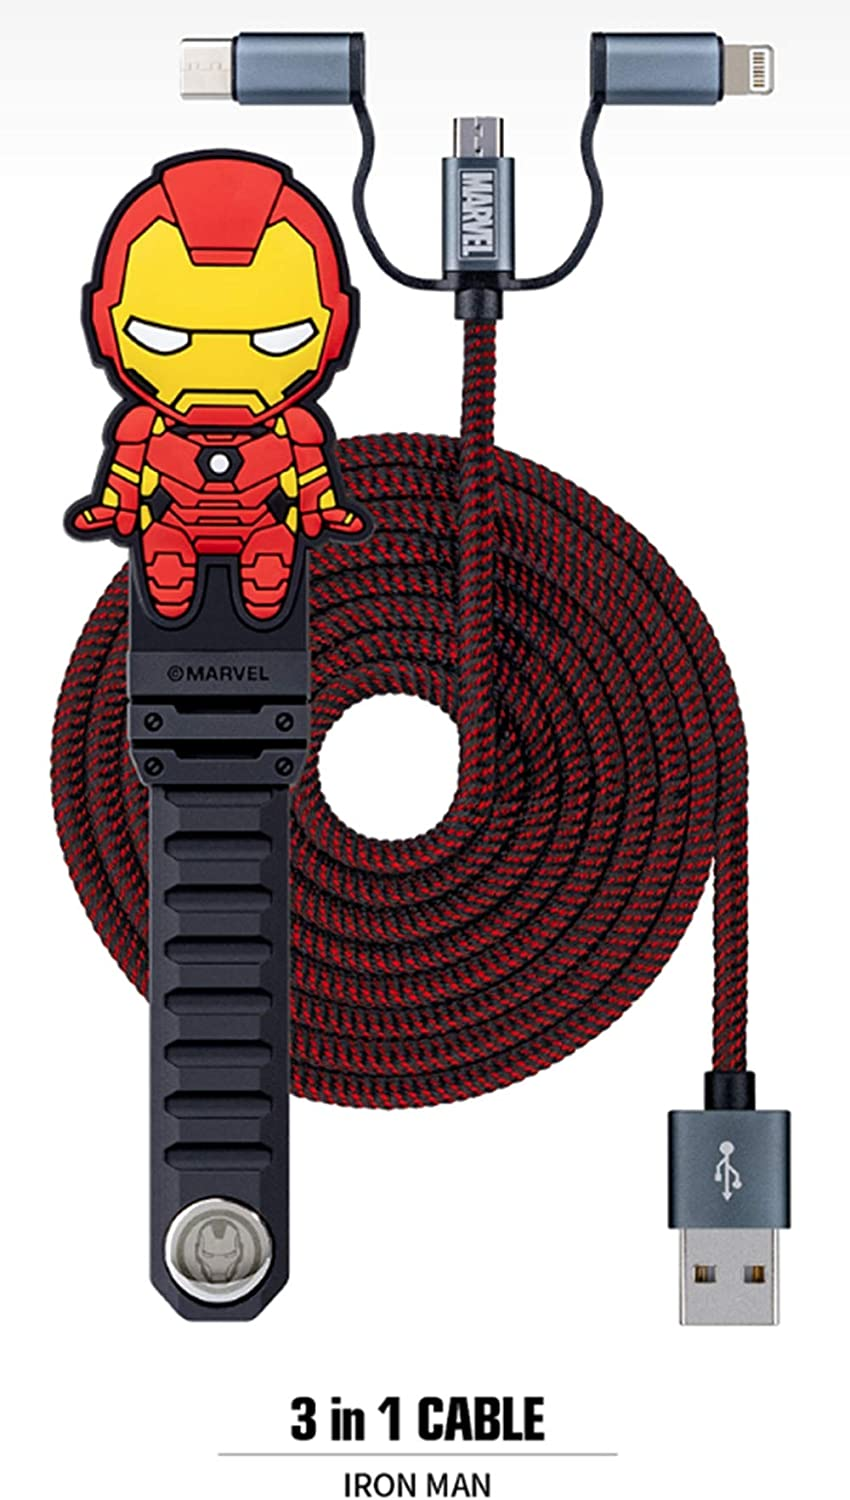 Groot Marvel Character Charger Cable-3 in 1 Multi Charger Cable